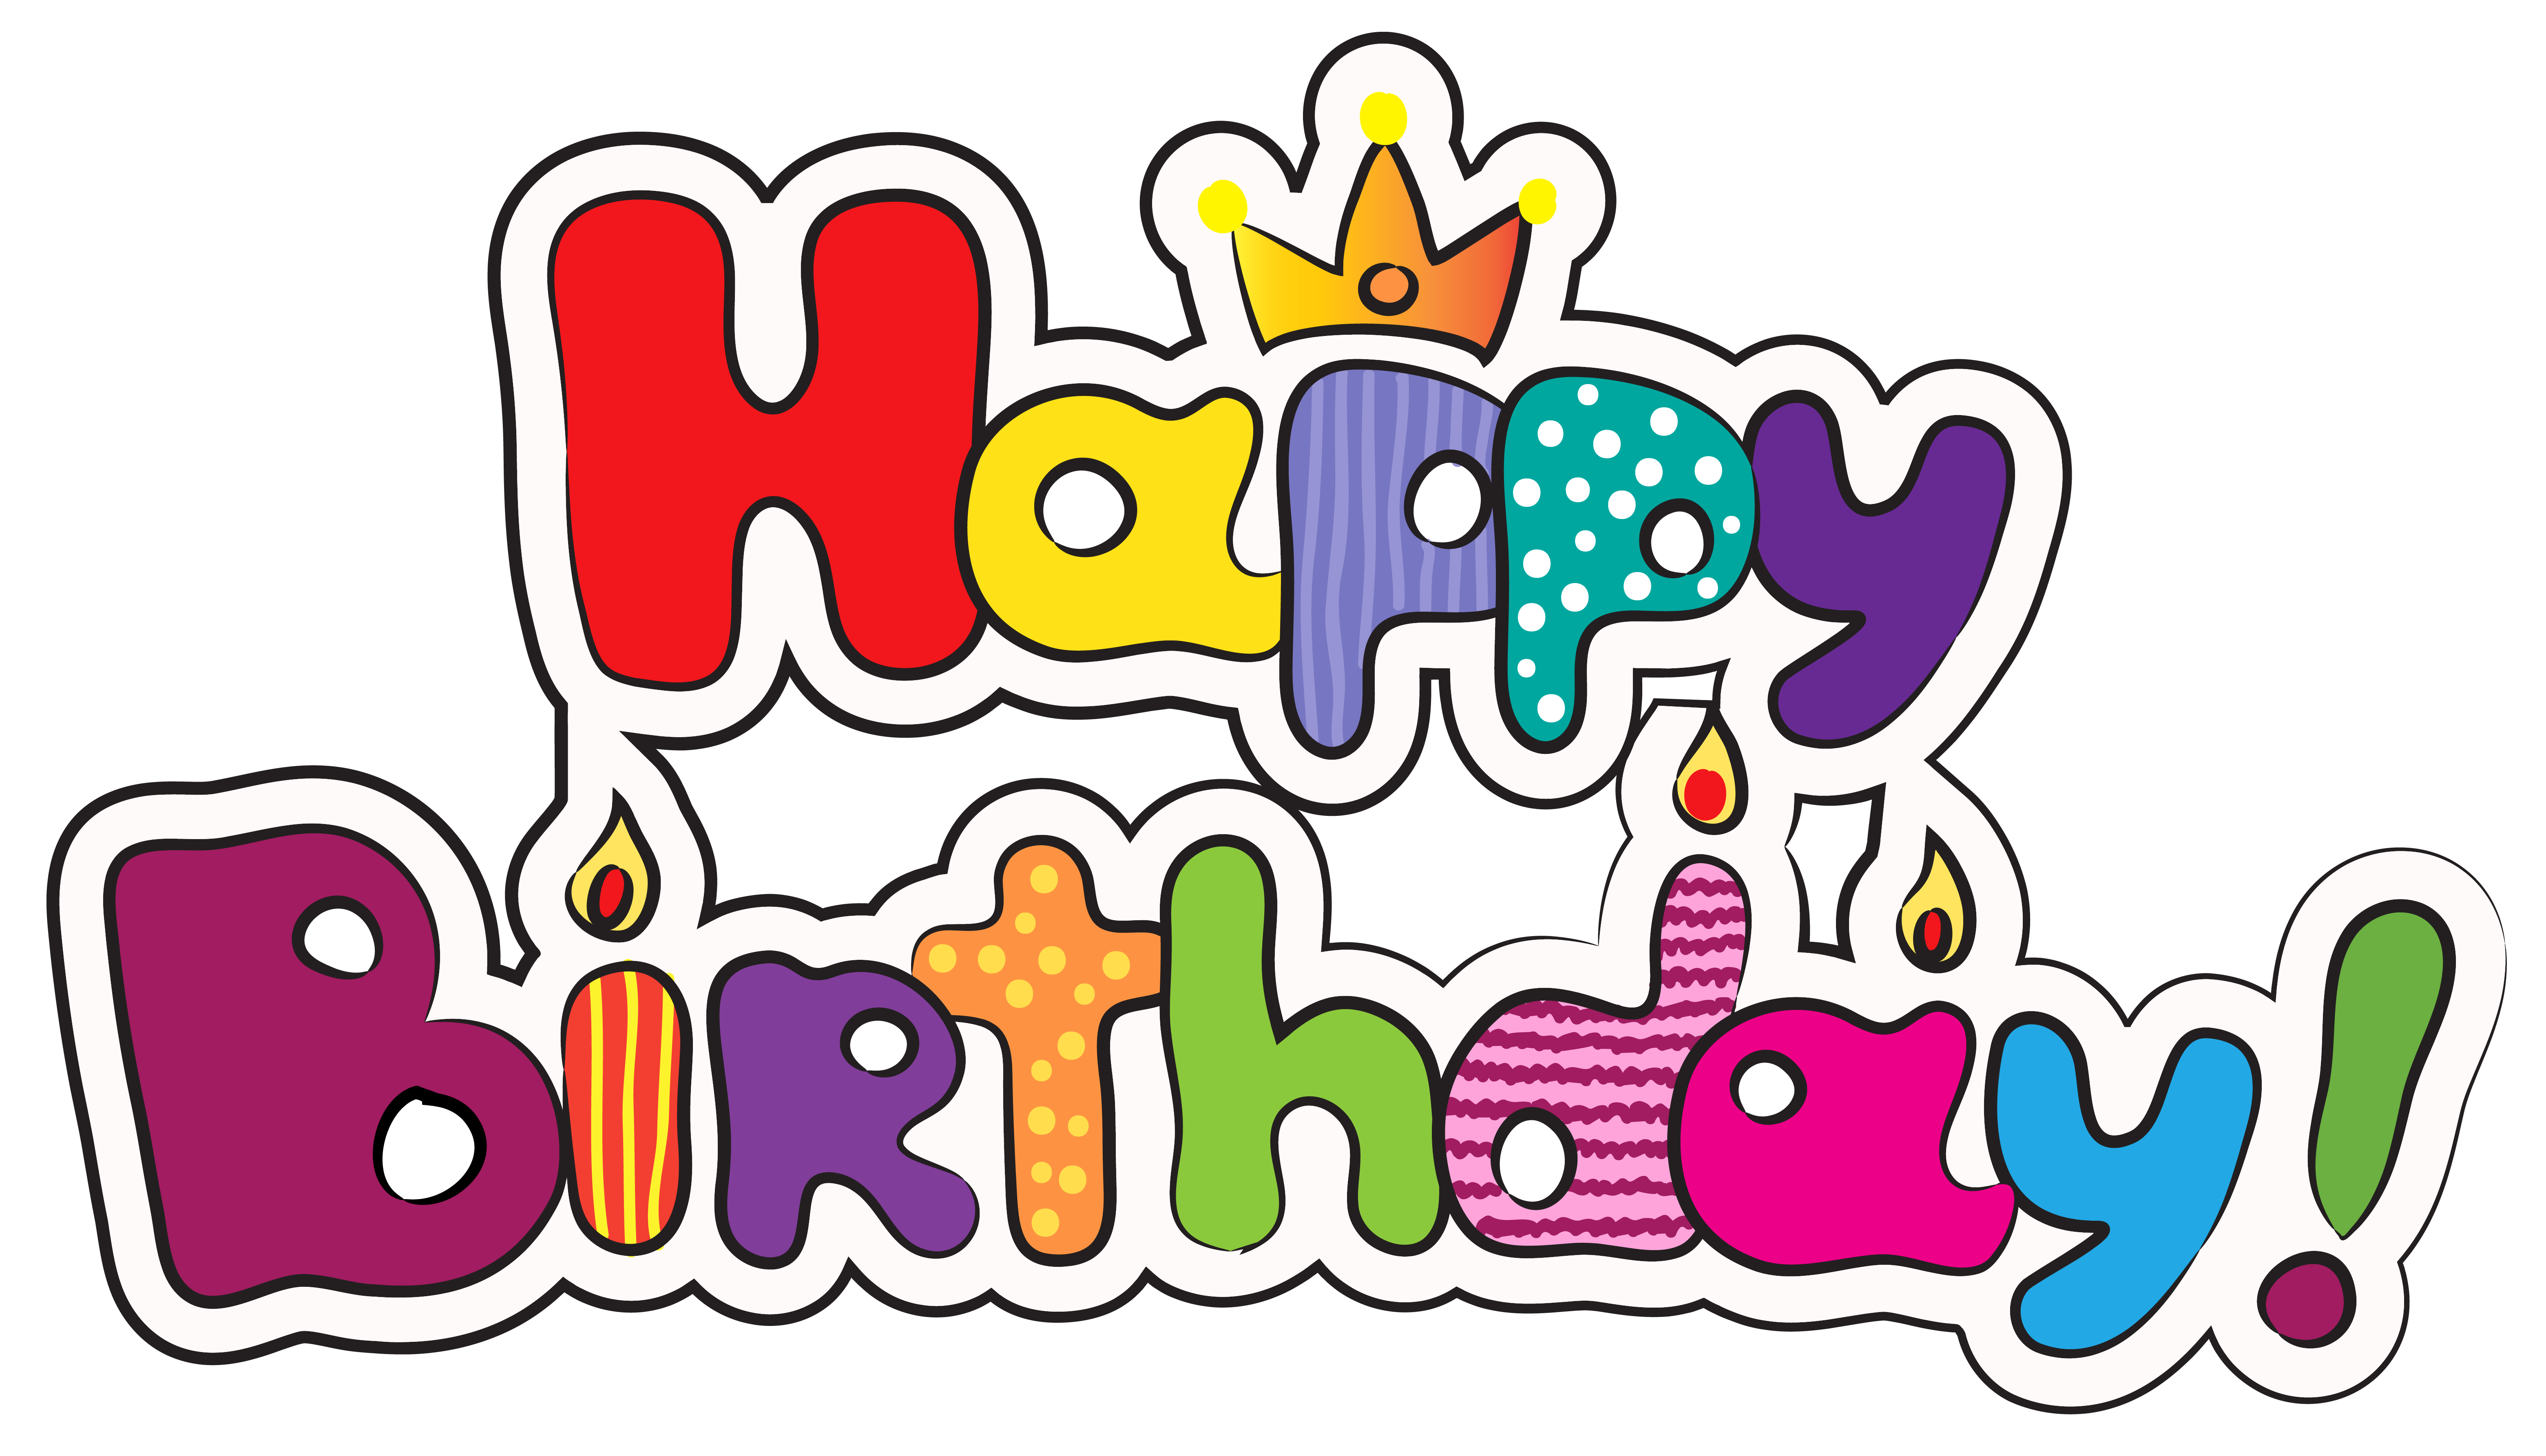 Colorful clipart image colorfulhappybirthdaypngclipartimage. Png happy birthday svg